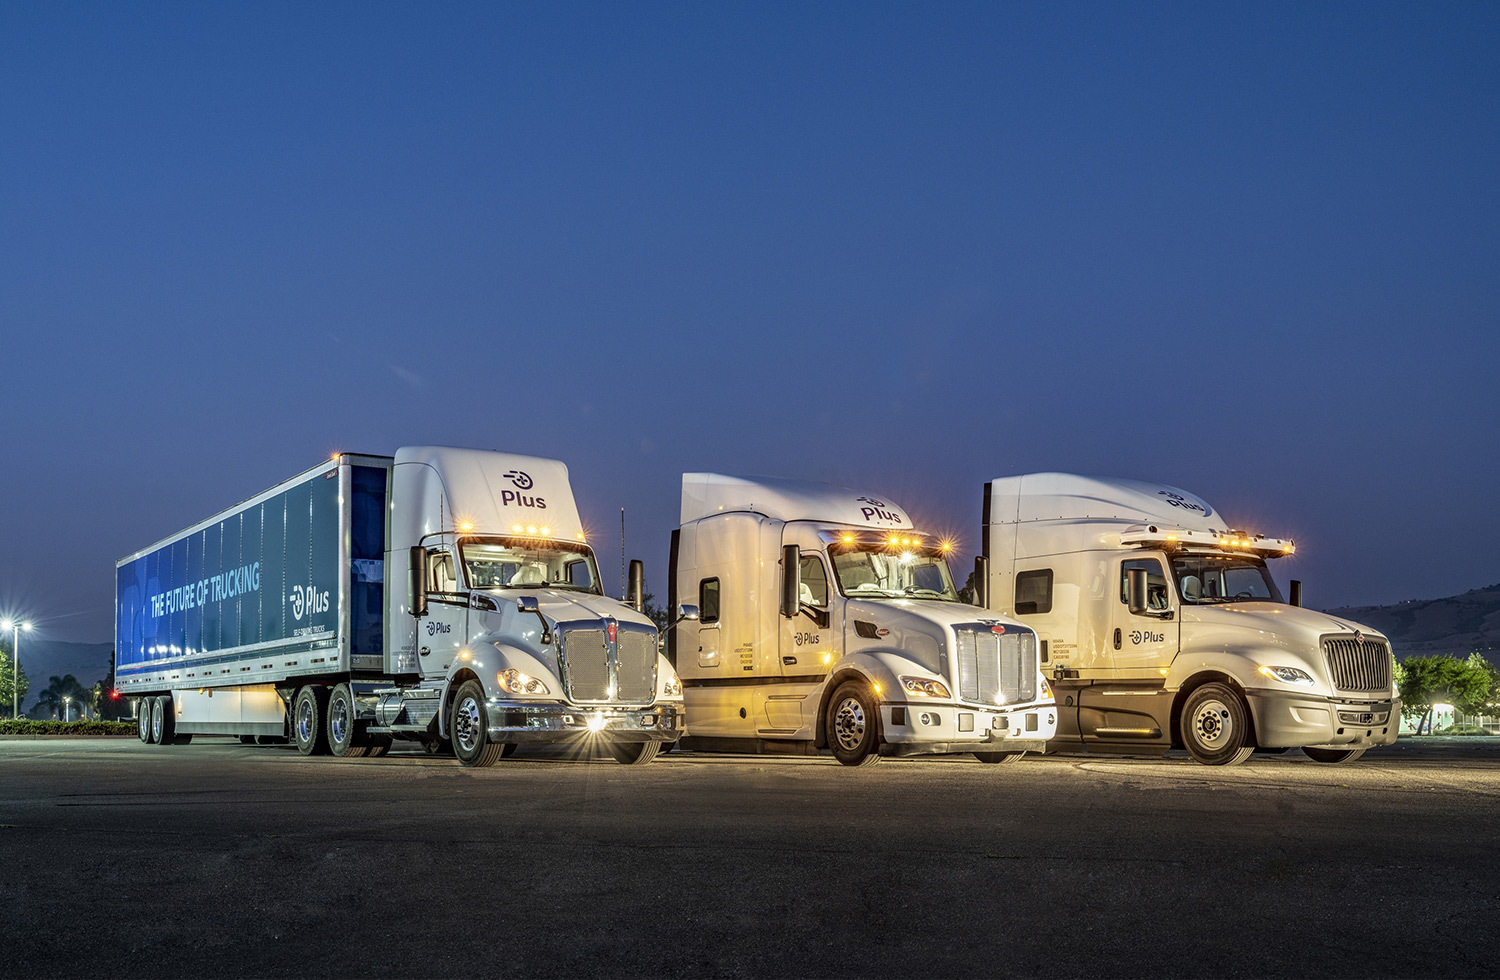 plus trucks lined up at night with ouster lidar sensors